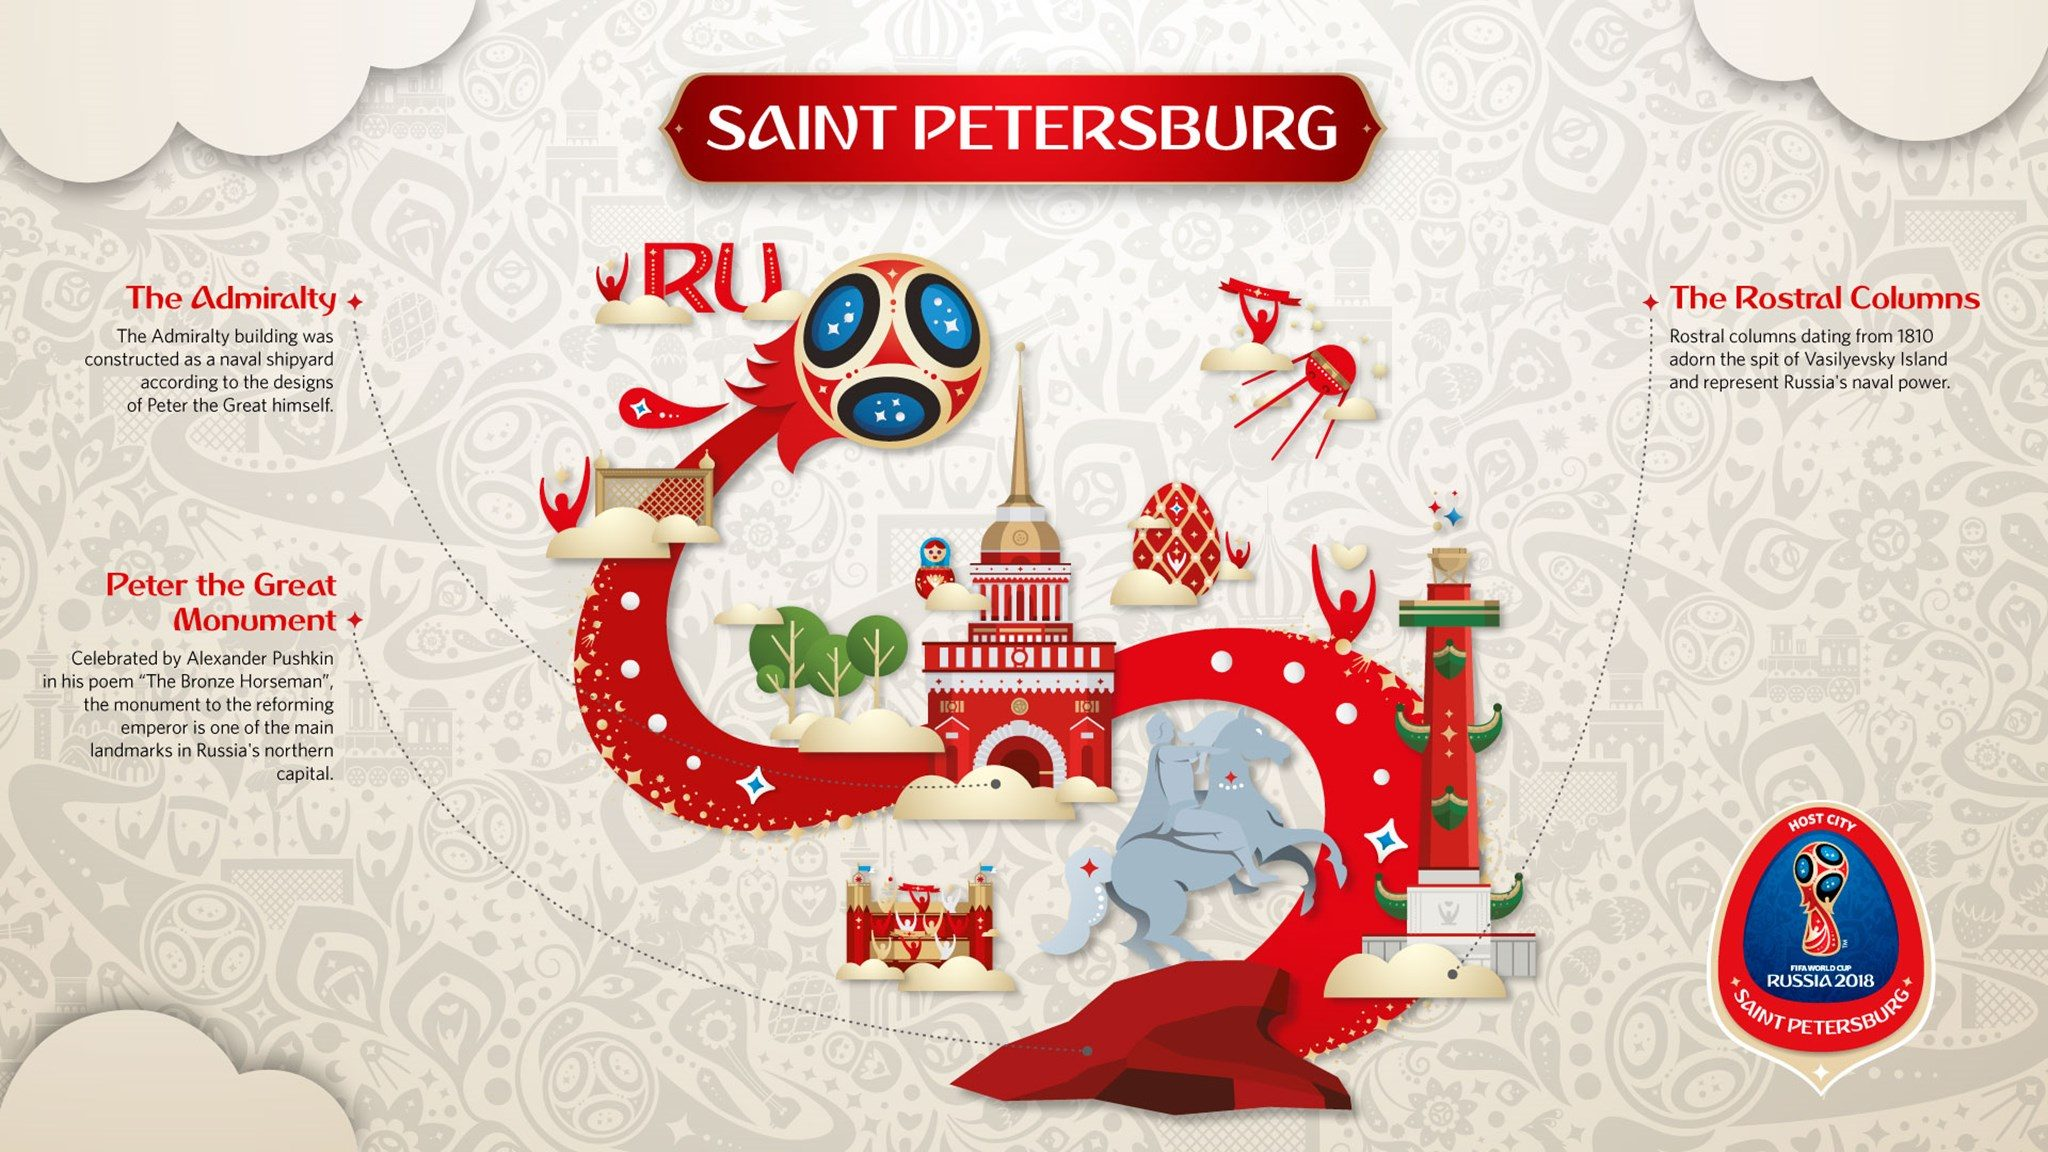 Saint Petersburg (FIFA 2018)